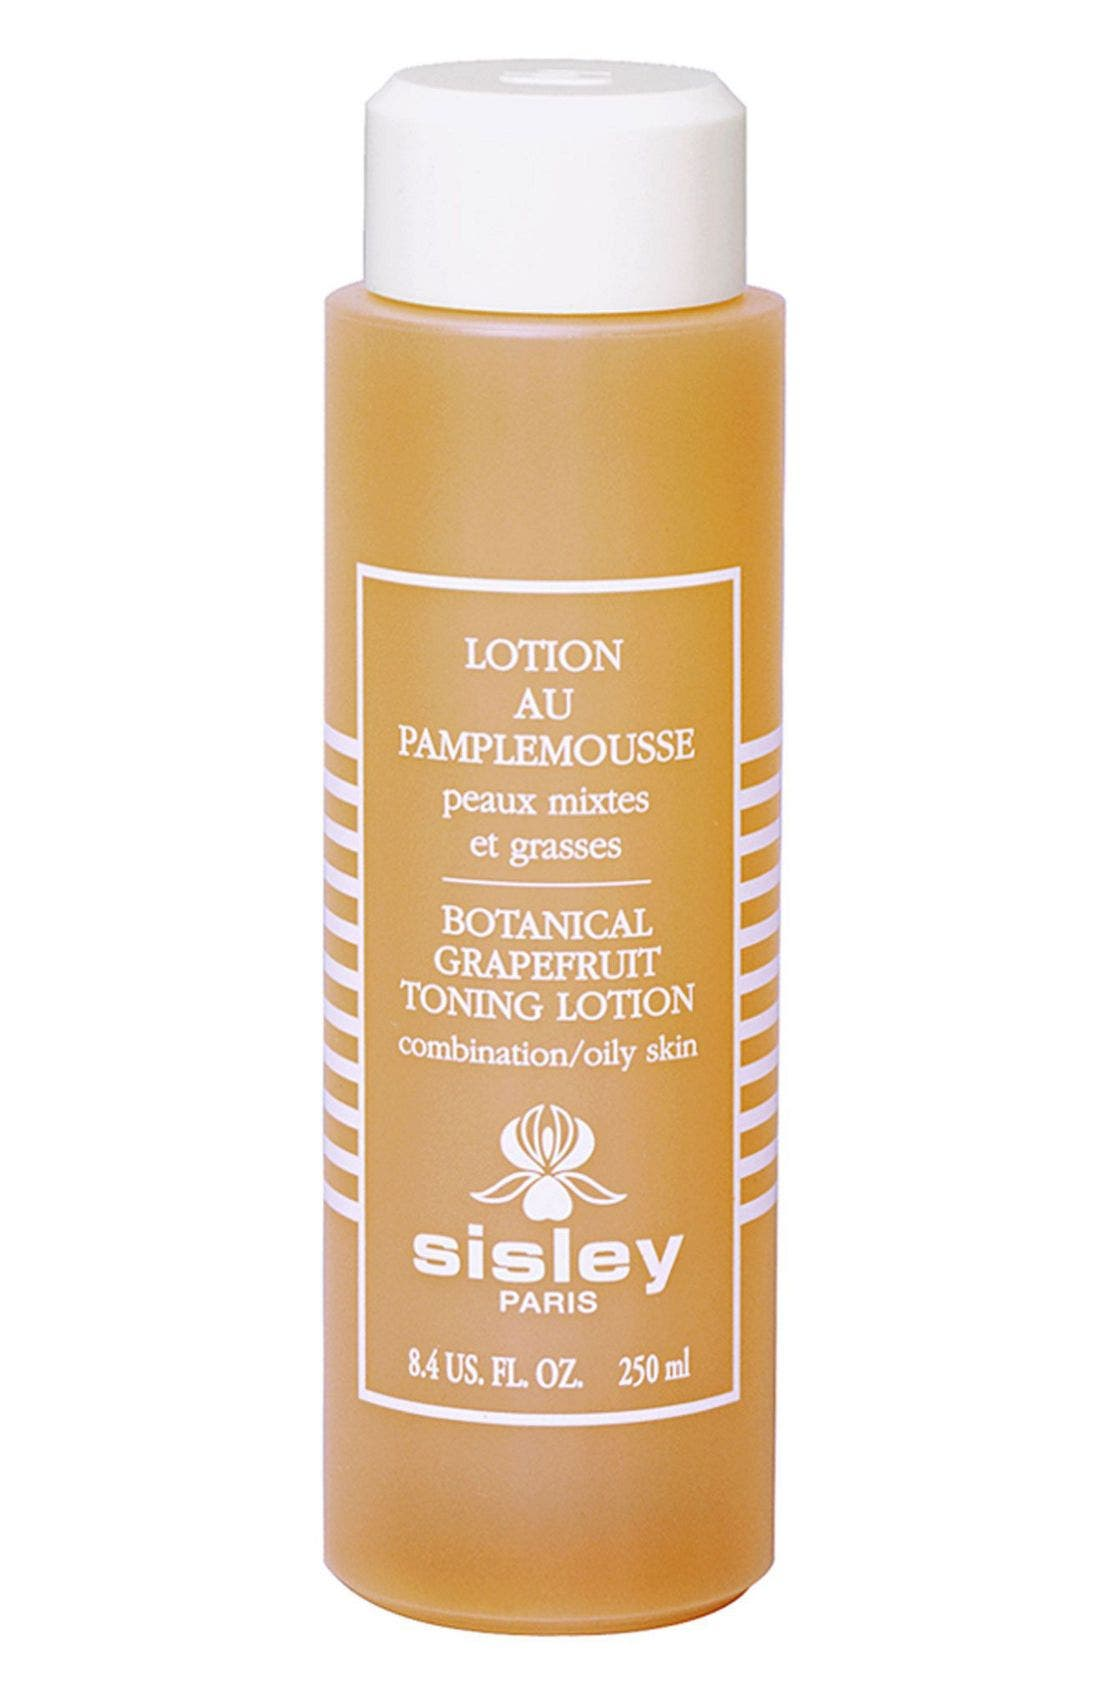 Sisley Paris Botanical Grapefruit Toning Lotion